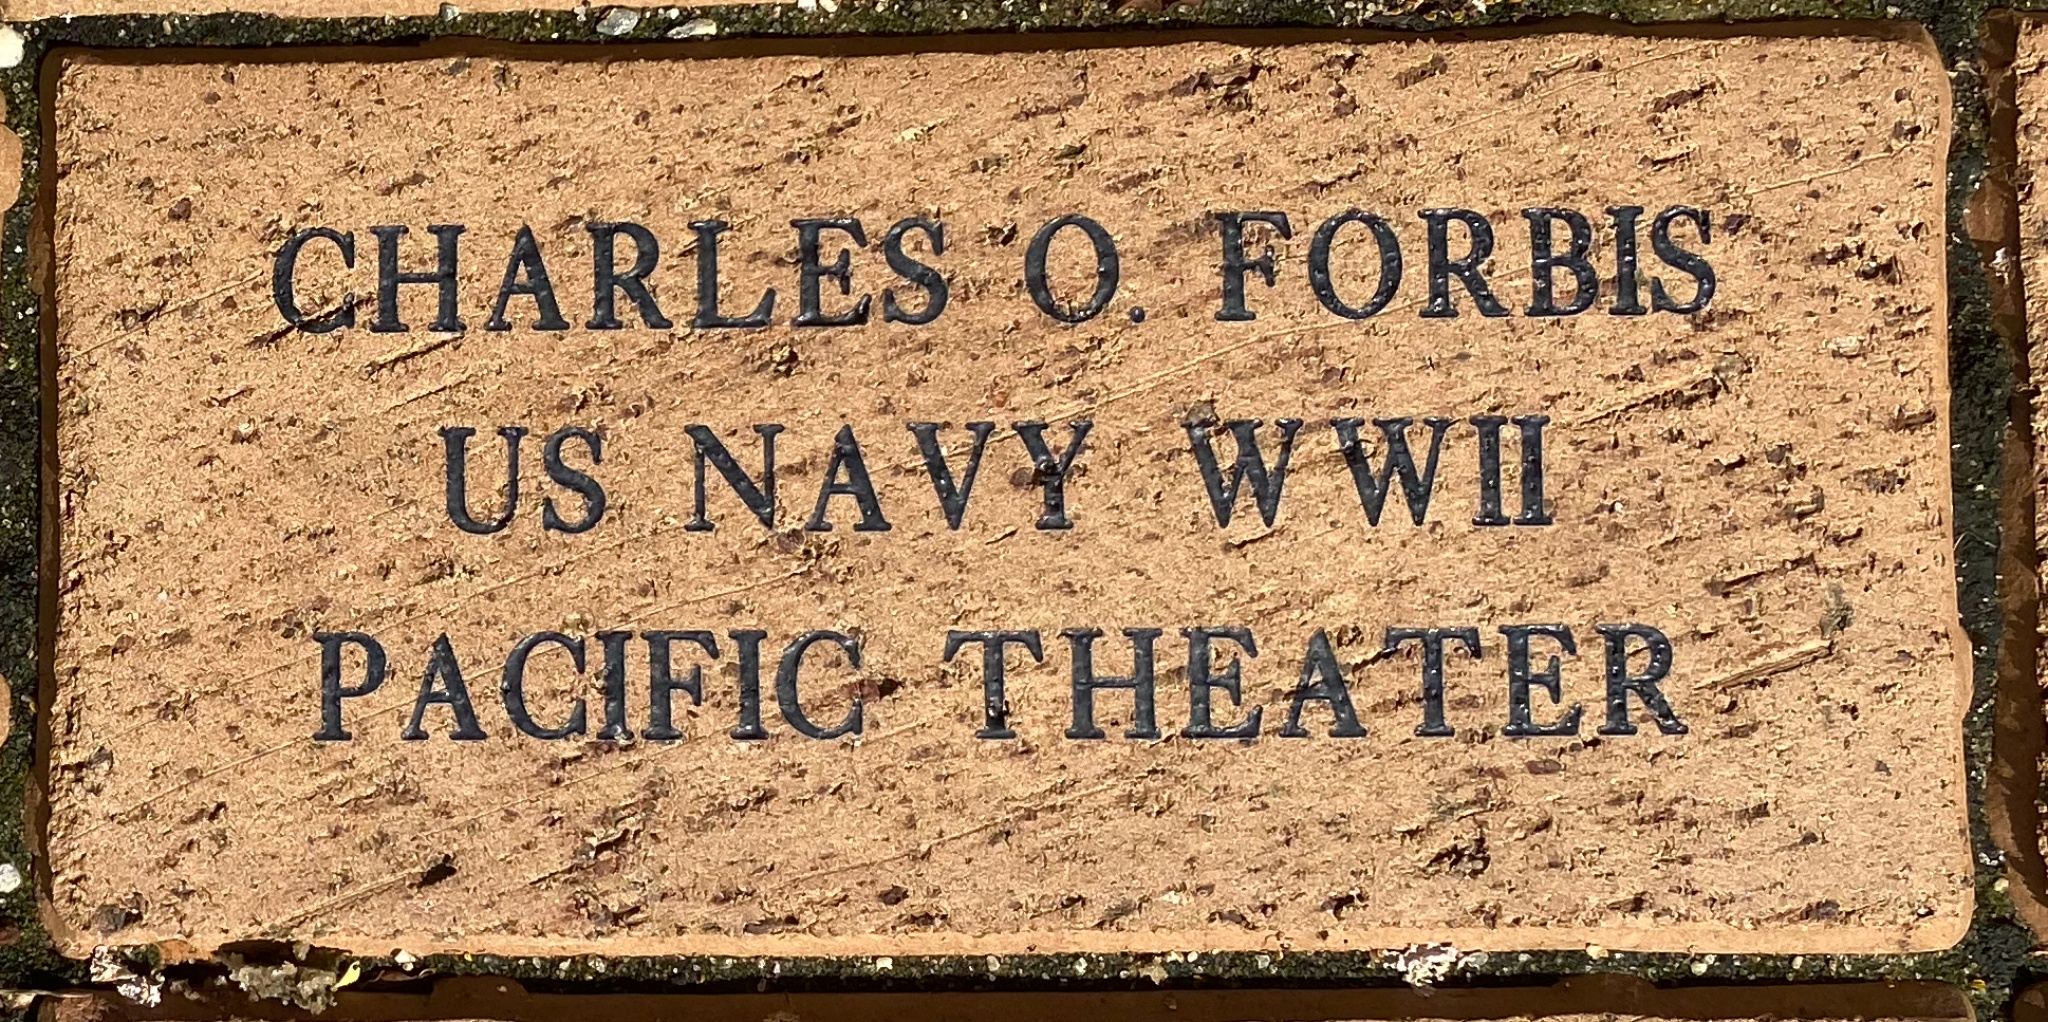 CHARLES O. FORBIS US NAVY WWII PACIFIC THEATER